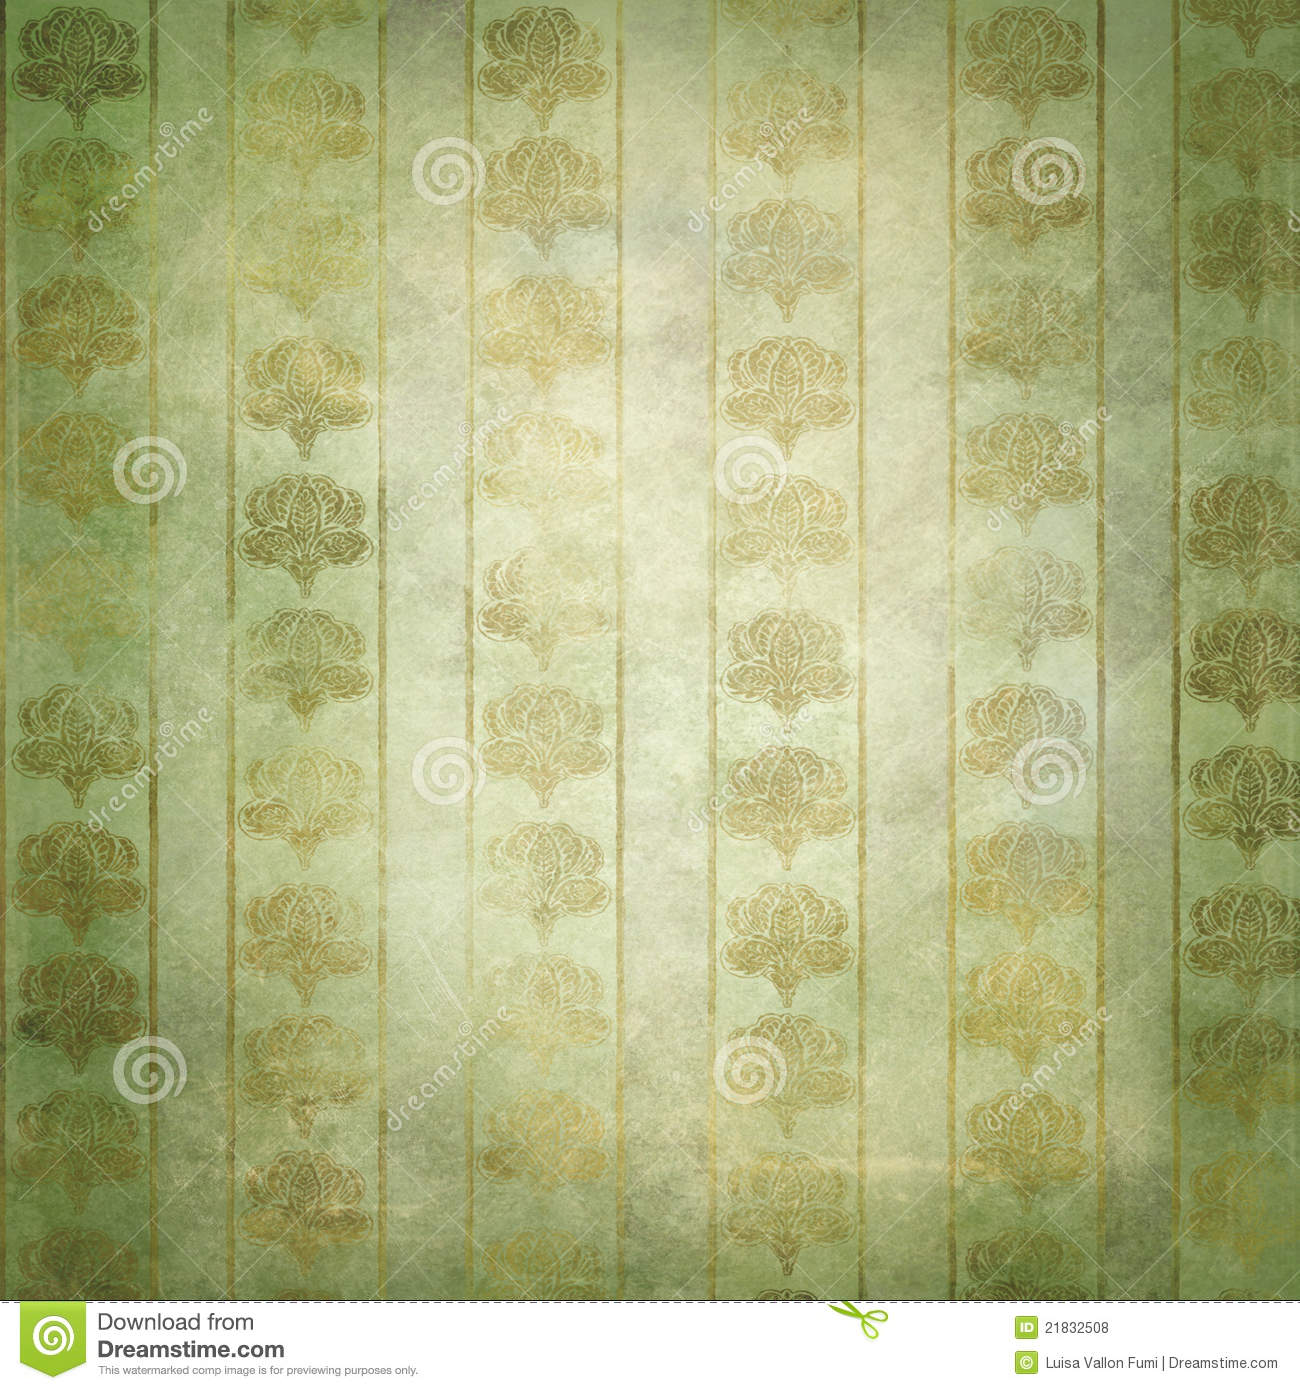 gold and green grunge victorian wallpaper stock photo